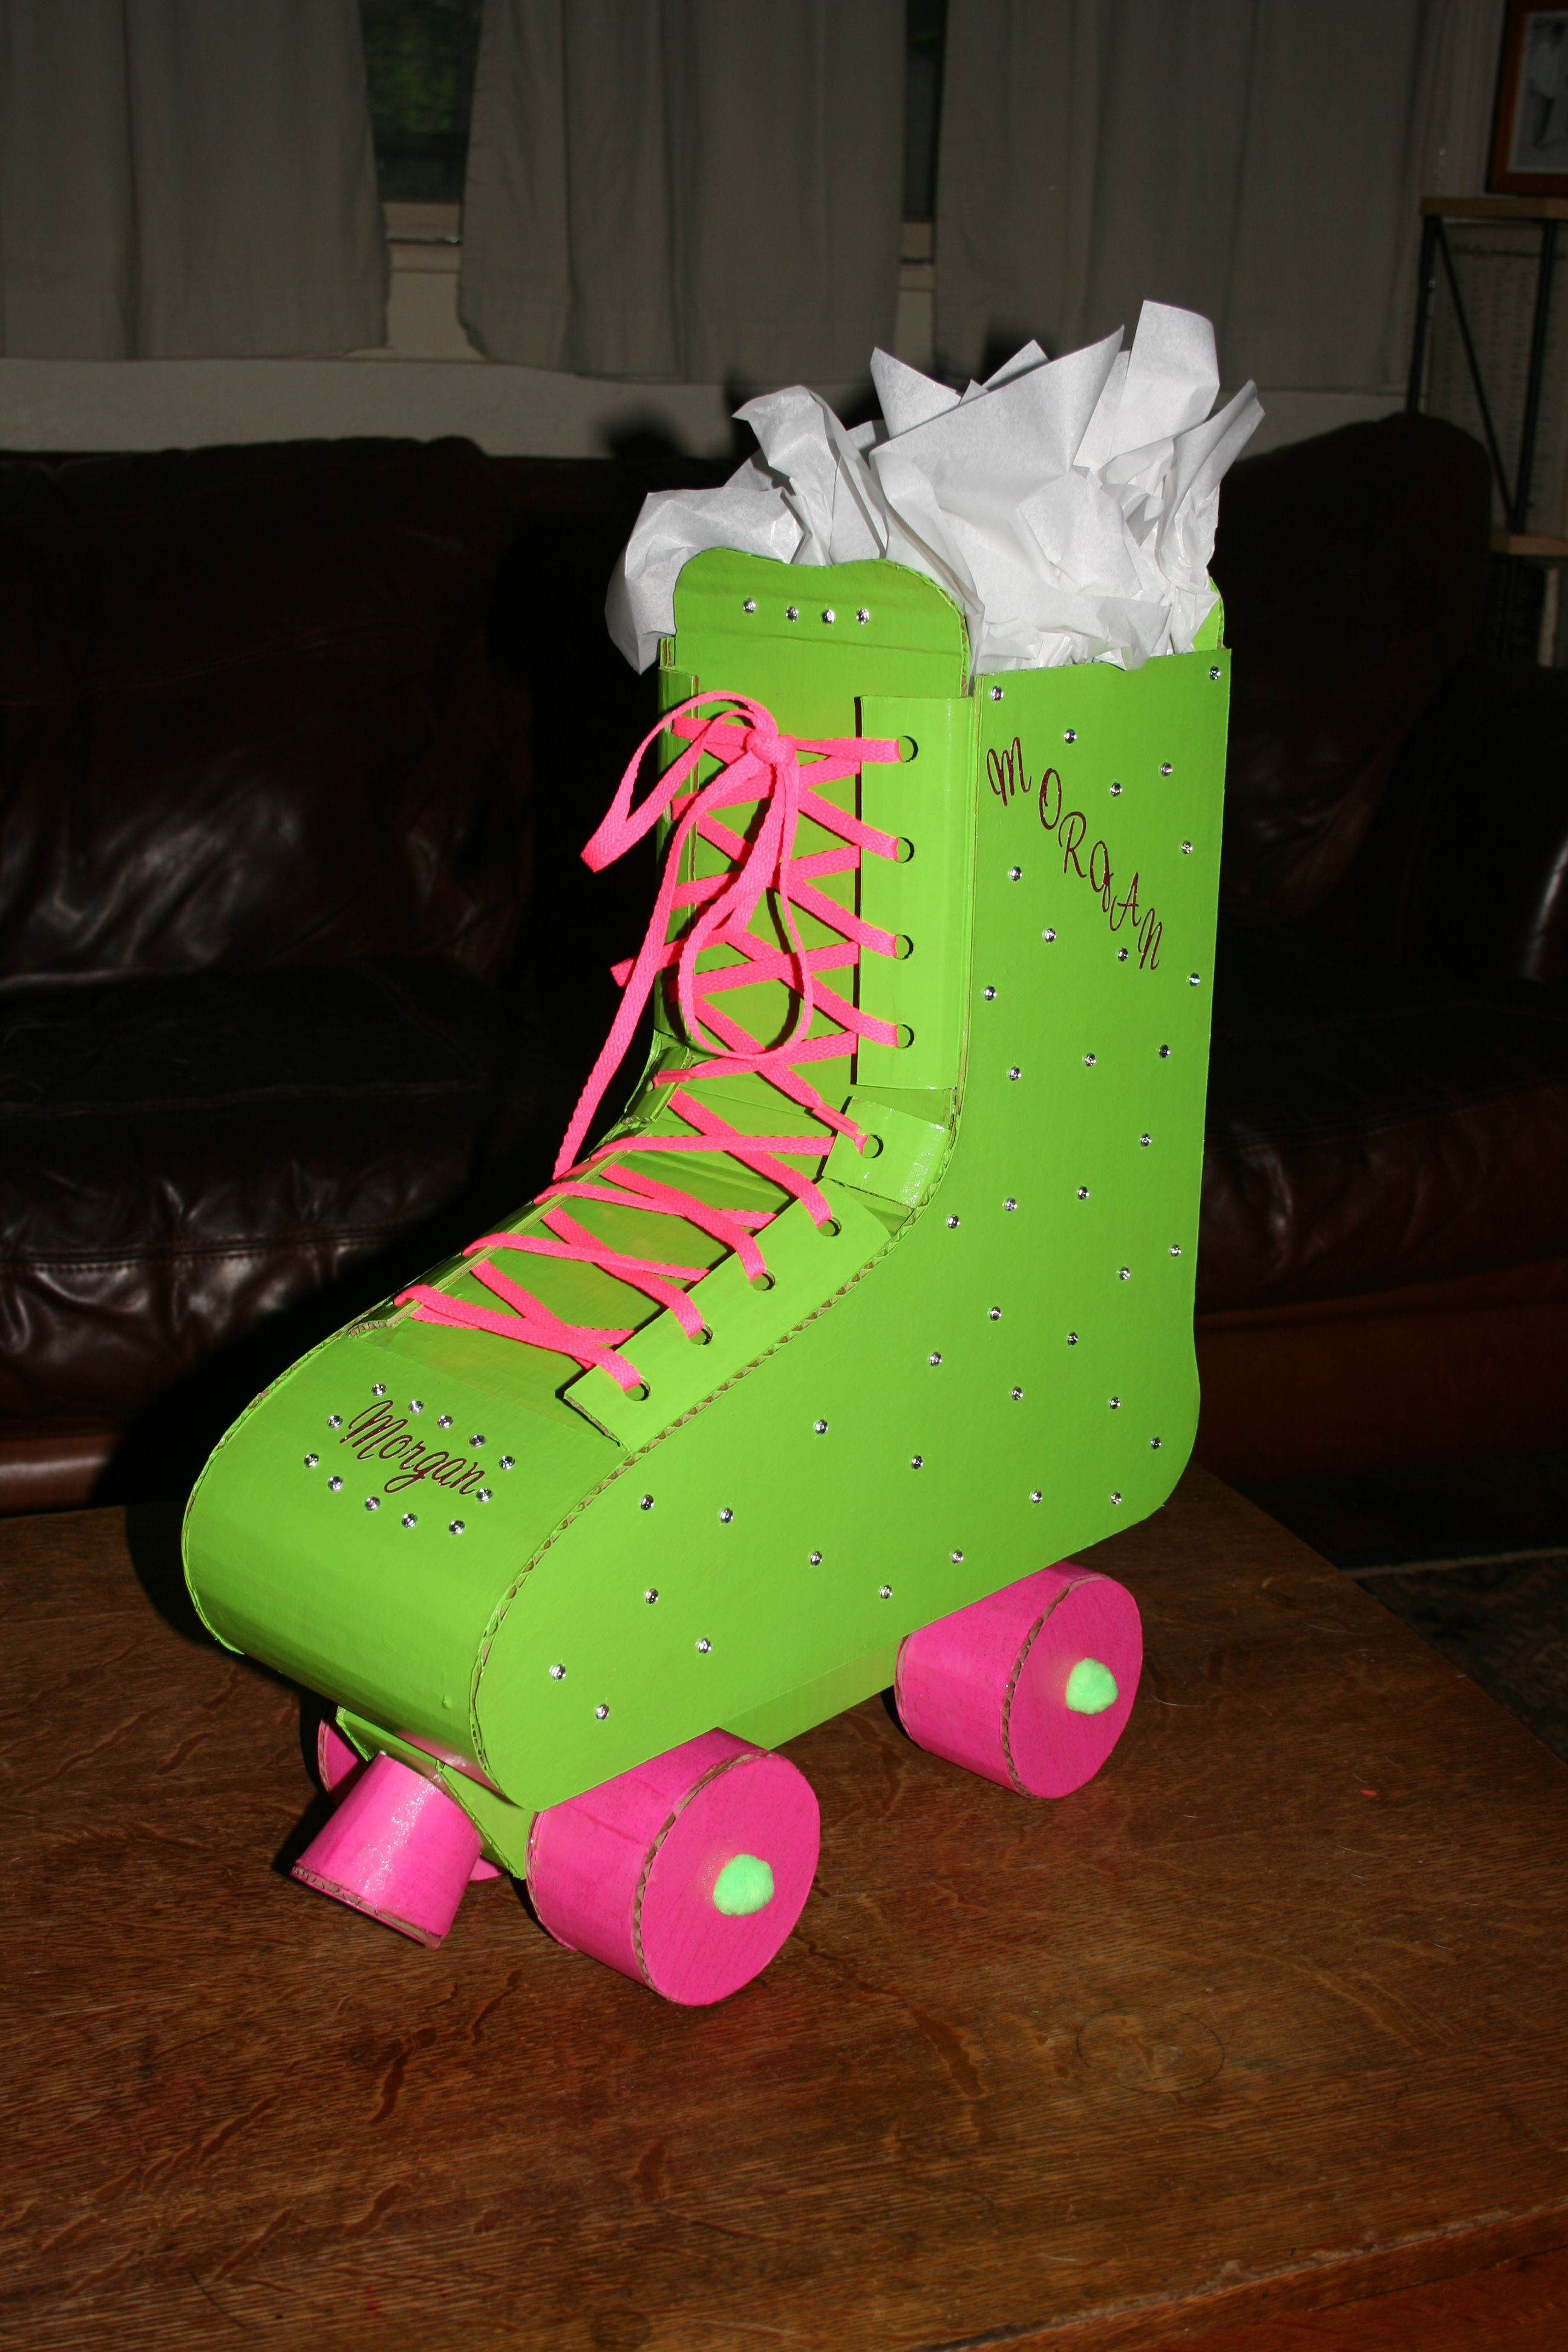 Roller skating vaughan - This Is A Gift Bag That I Made Out Of Cardboard For A Old Girl Having A Roller Skating Party If I Get Enough Pins I Will Give Instructions As To How